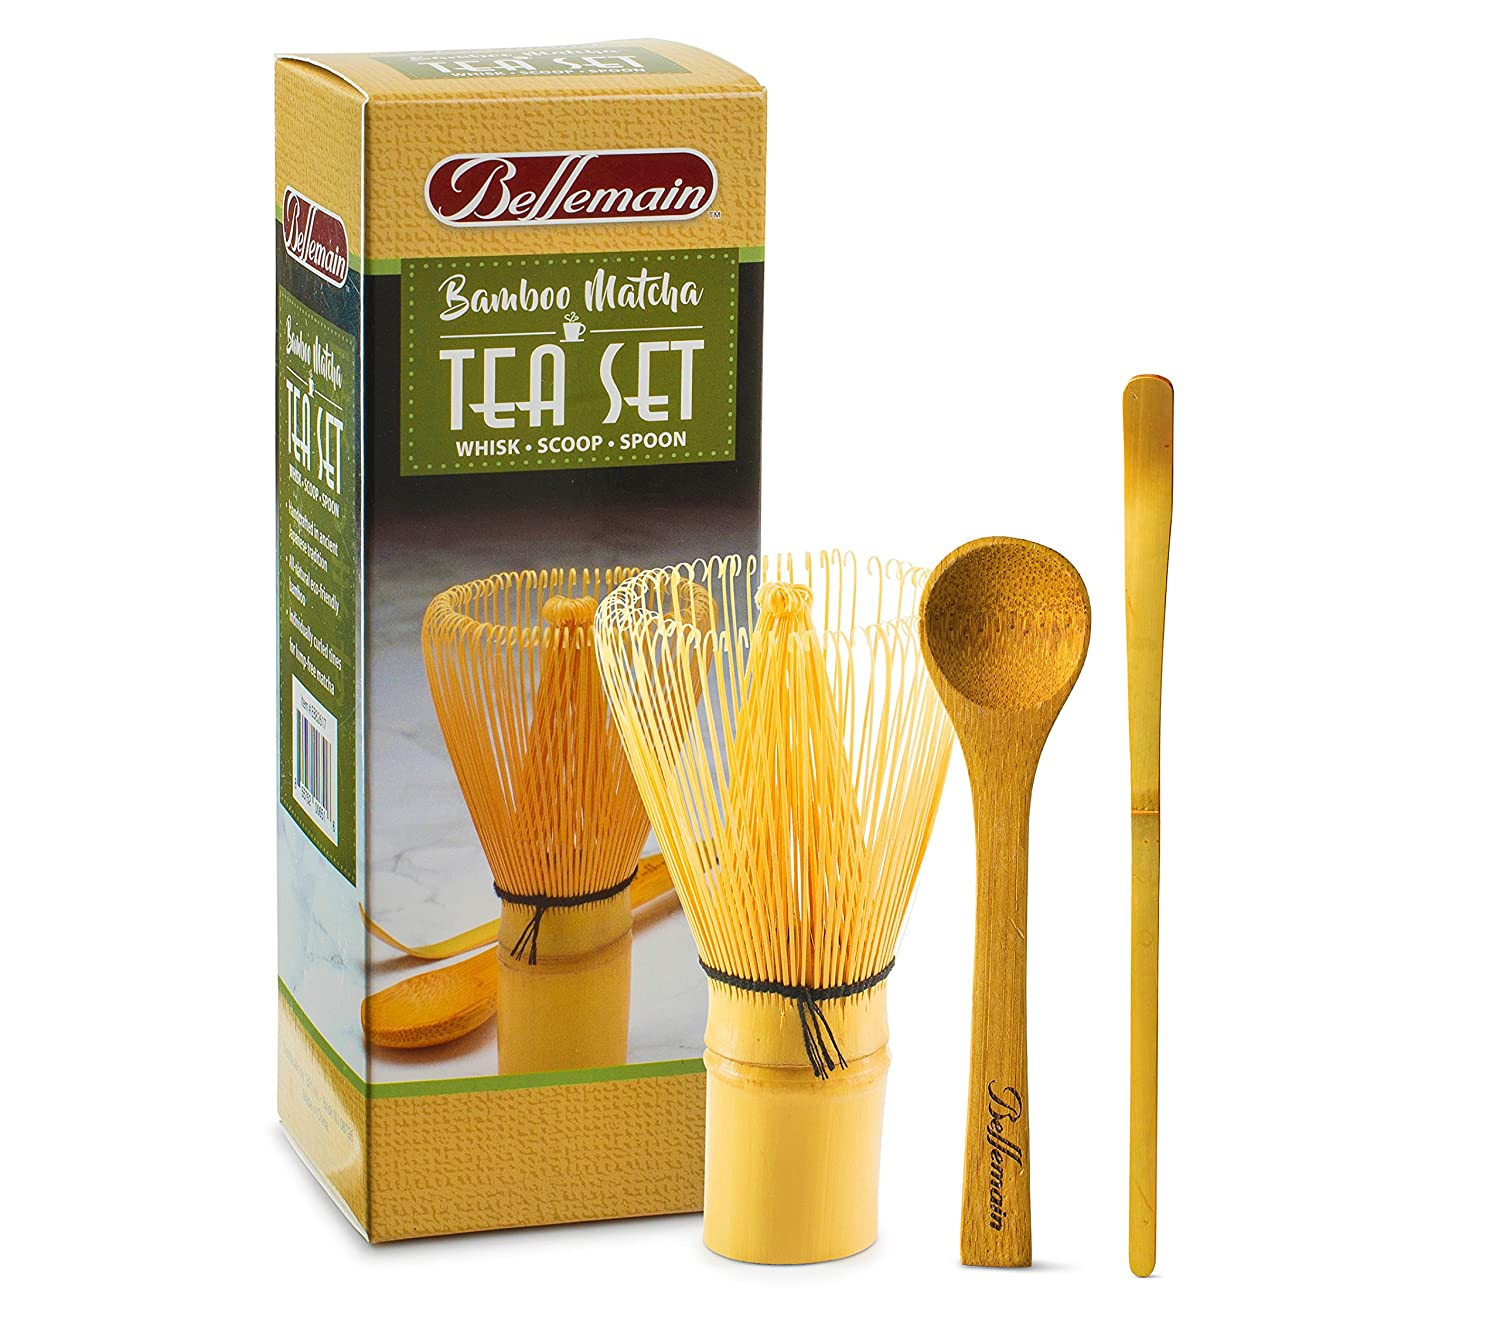 Bellemain 3-Piece Bamboo Matcha Tea Set Includes Whisk (Chasen), Scoop and Teaspoon EPI TRTAZ11A